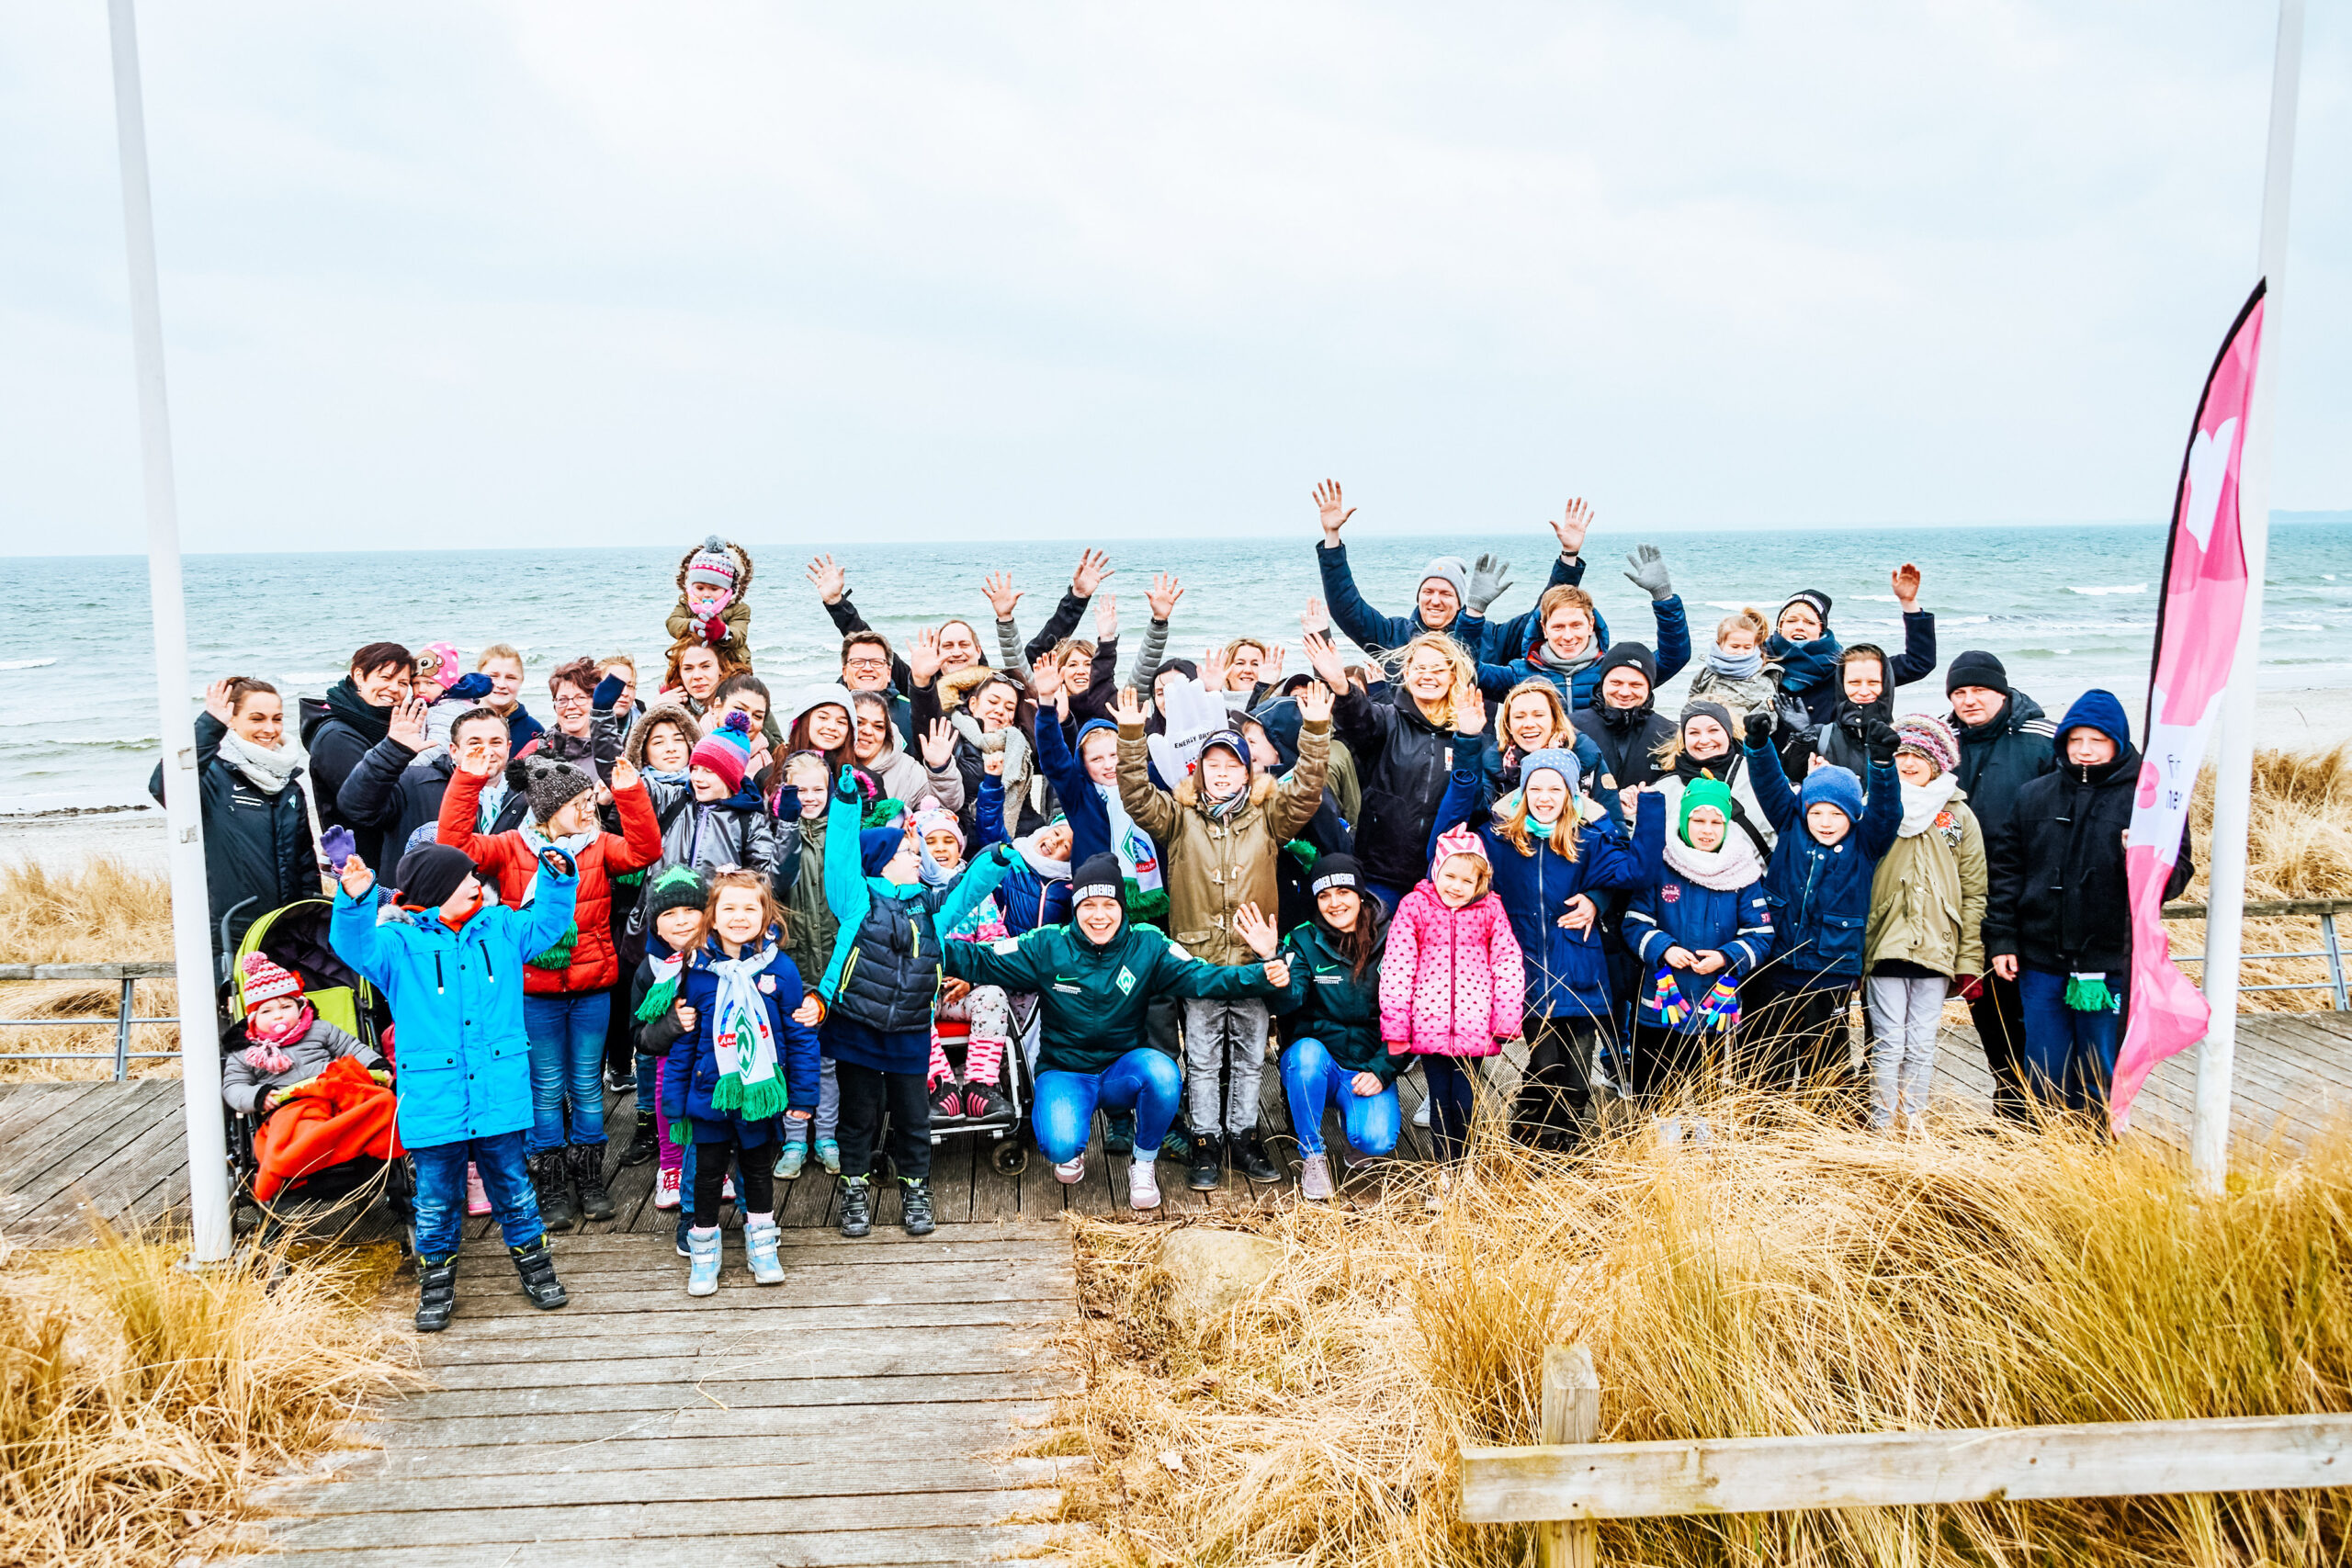 Ten families at Ostseestrans are happy